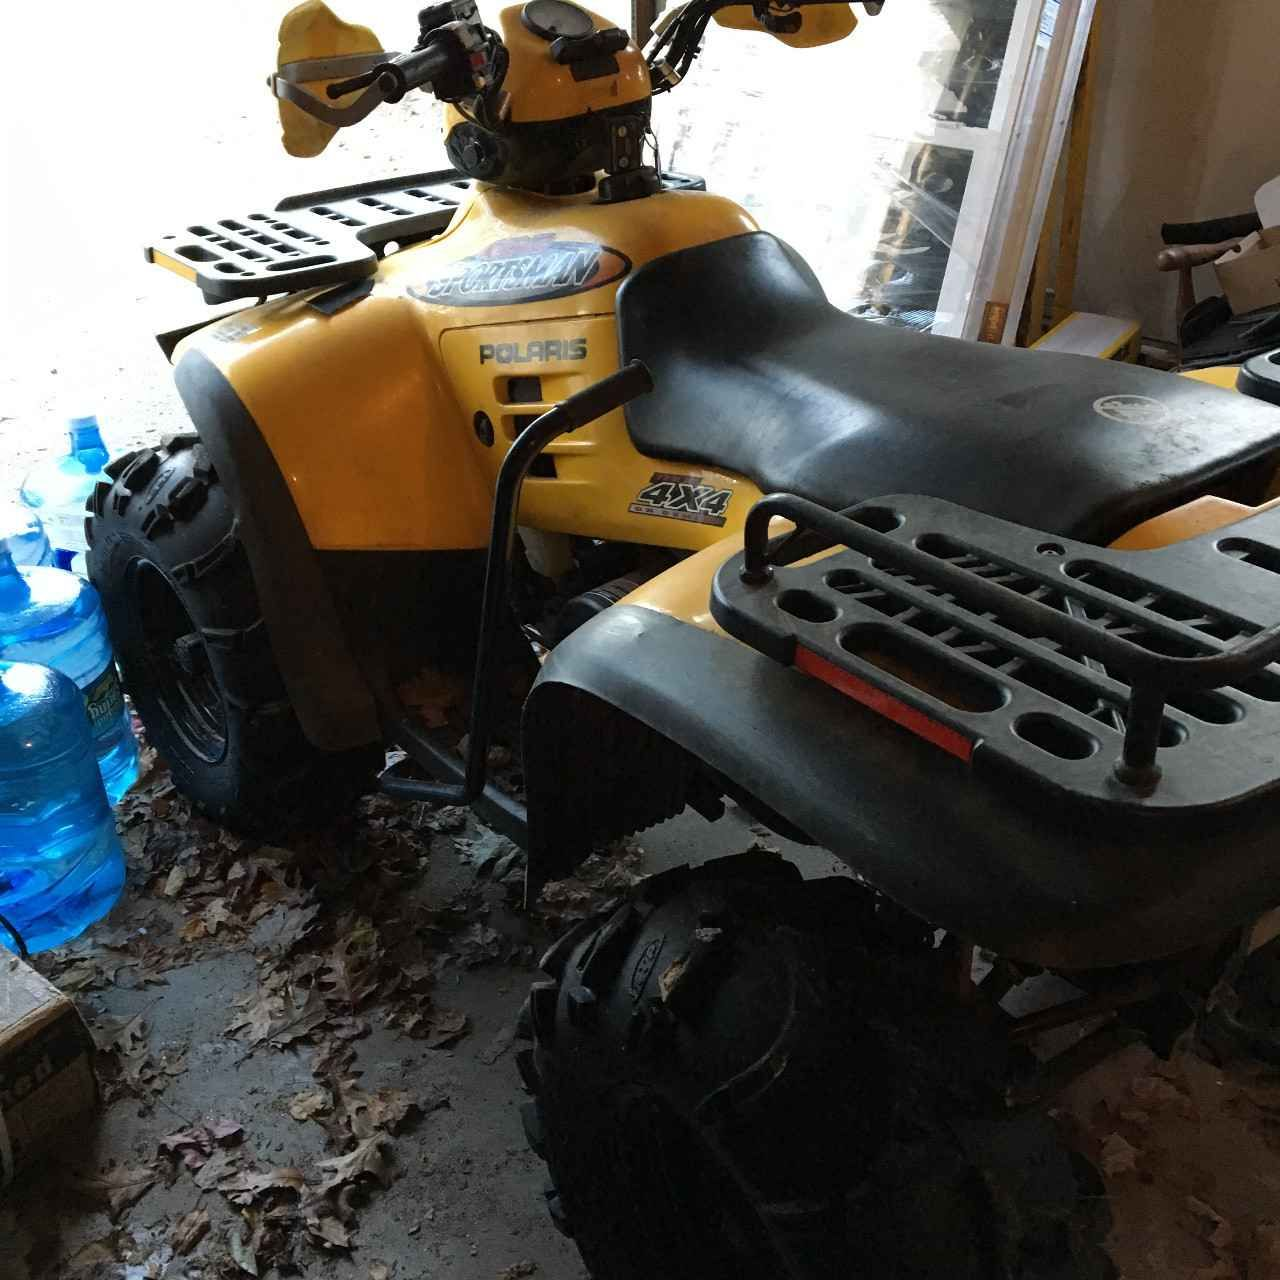 Used 2001 polaris sportsman 400 atvs for sale in connecticut this used 2001 polaris sportsman 400 atvs for sale in connecticut this is a yellow and black 2001 polaris 4x4 sportsman 400 second owners selling due to fandeluxe Gallery